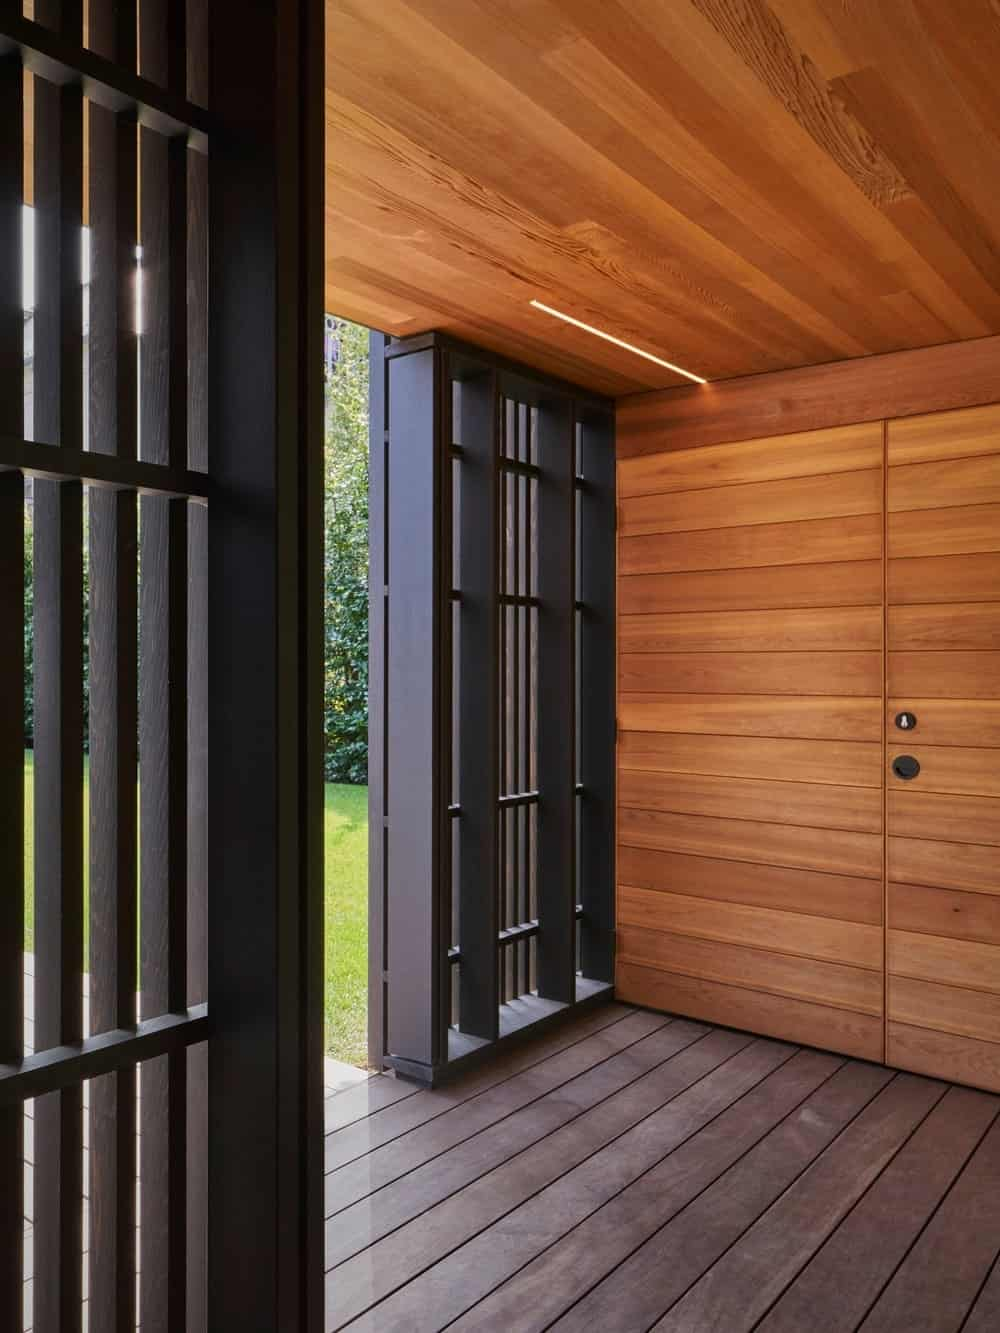 Entryway in the Forest Hill Garden & Pavilion designed by Amantea Architects.